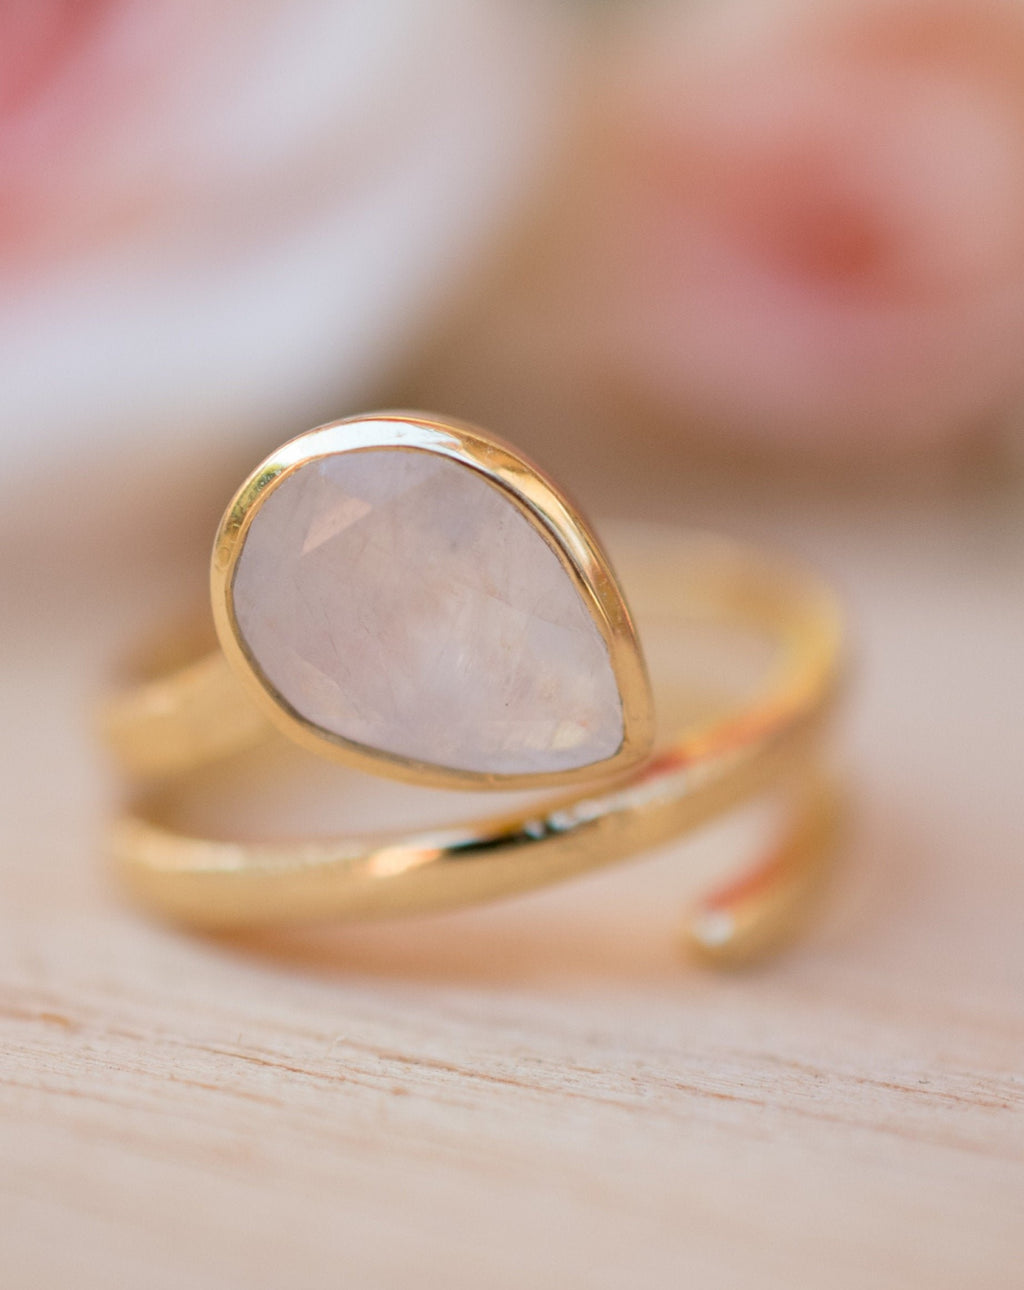 Moonstone Ring * 18k Gold Plated Ring * Statement Ring * Gemstone Ring * White * Bridal Ring * Wedding Ring * Organic Ring * Natural BJR109